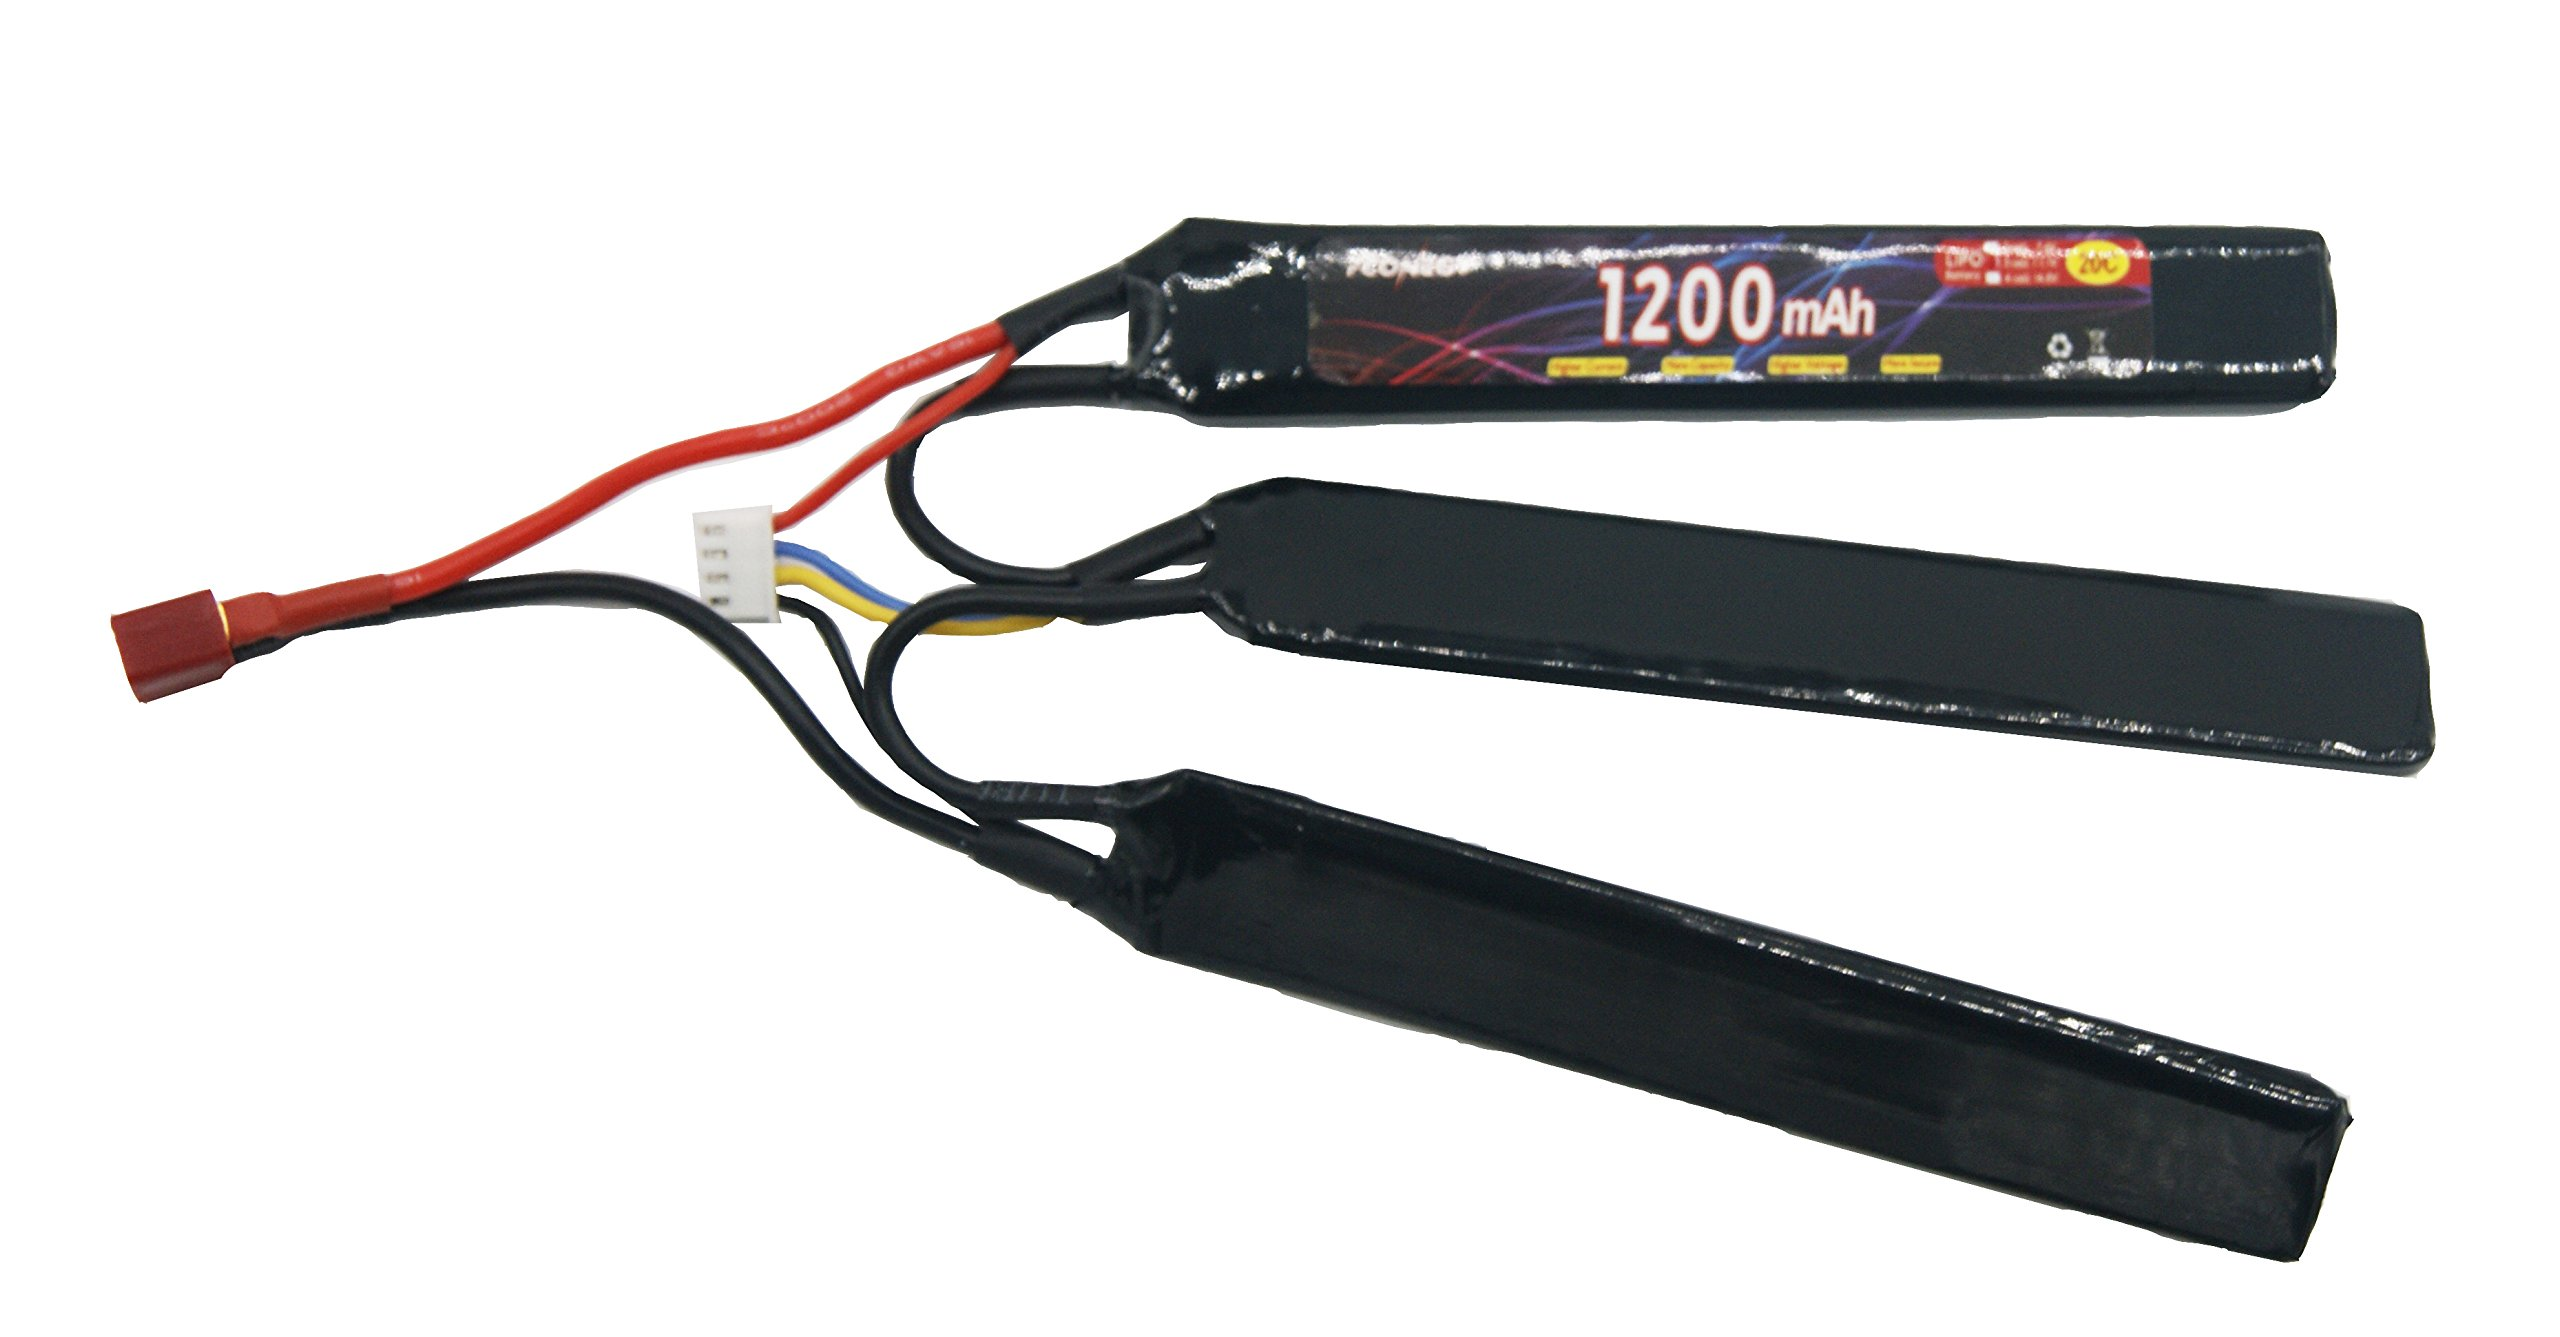 Fconegy 3S 11.1V 1200mAh 20C Lipo Battery Pack with Deans Plug for Airsoft Gun